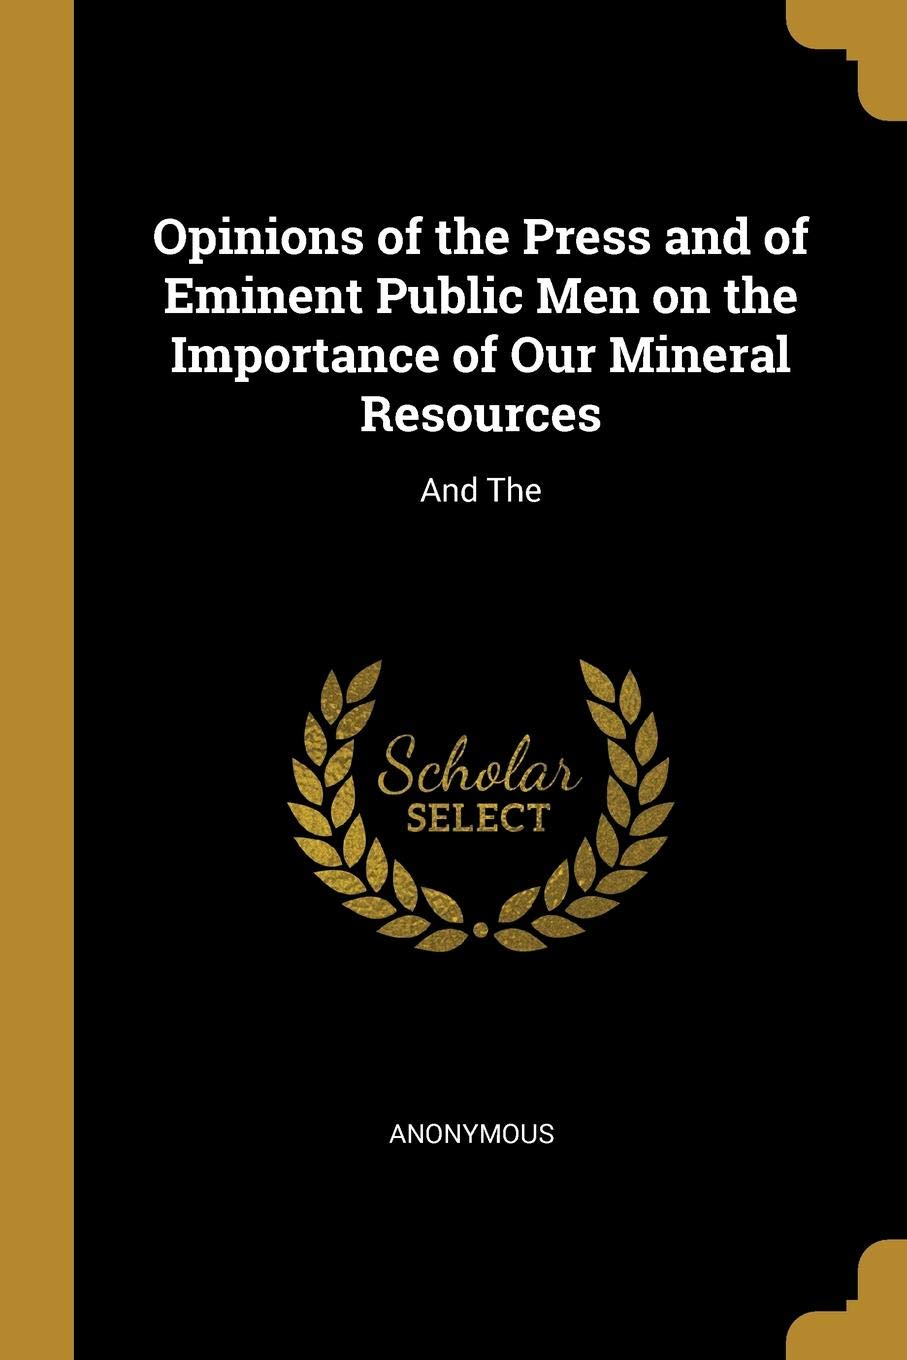 Opinions of the Press and of Eminent Public Men on the Importance of